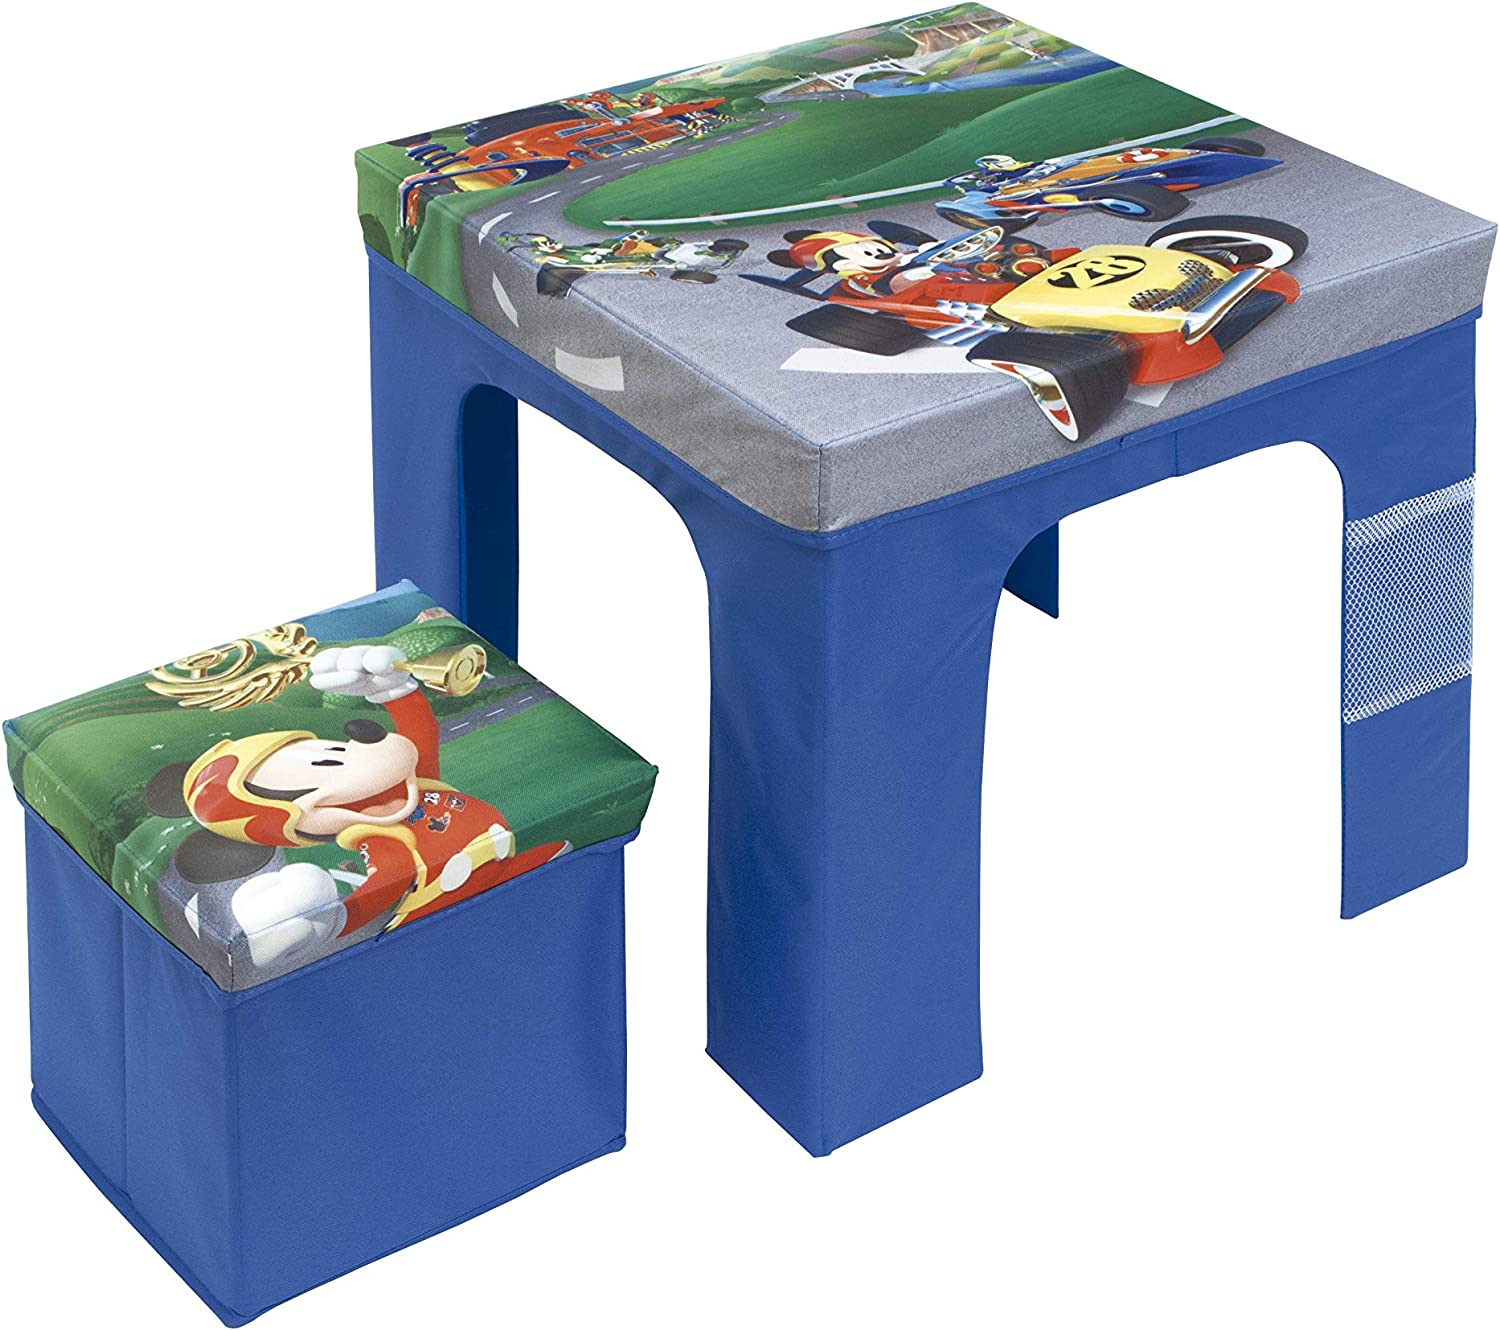 Arditex 50x50x40 cm Folding Table and Stool Set Cube Storage Box 25x25x25 cm Licenced Mickey Mouse, PP + Box, 50 x 50 x 40 cm